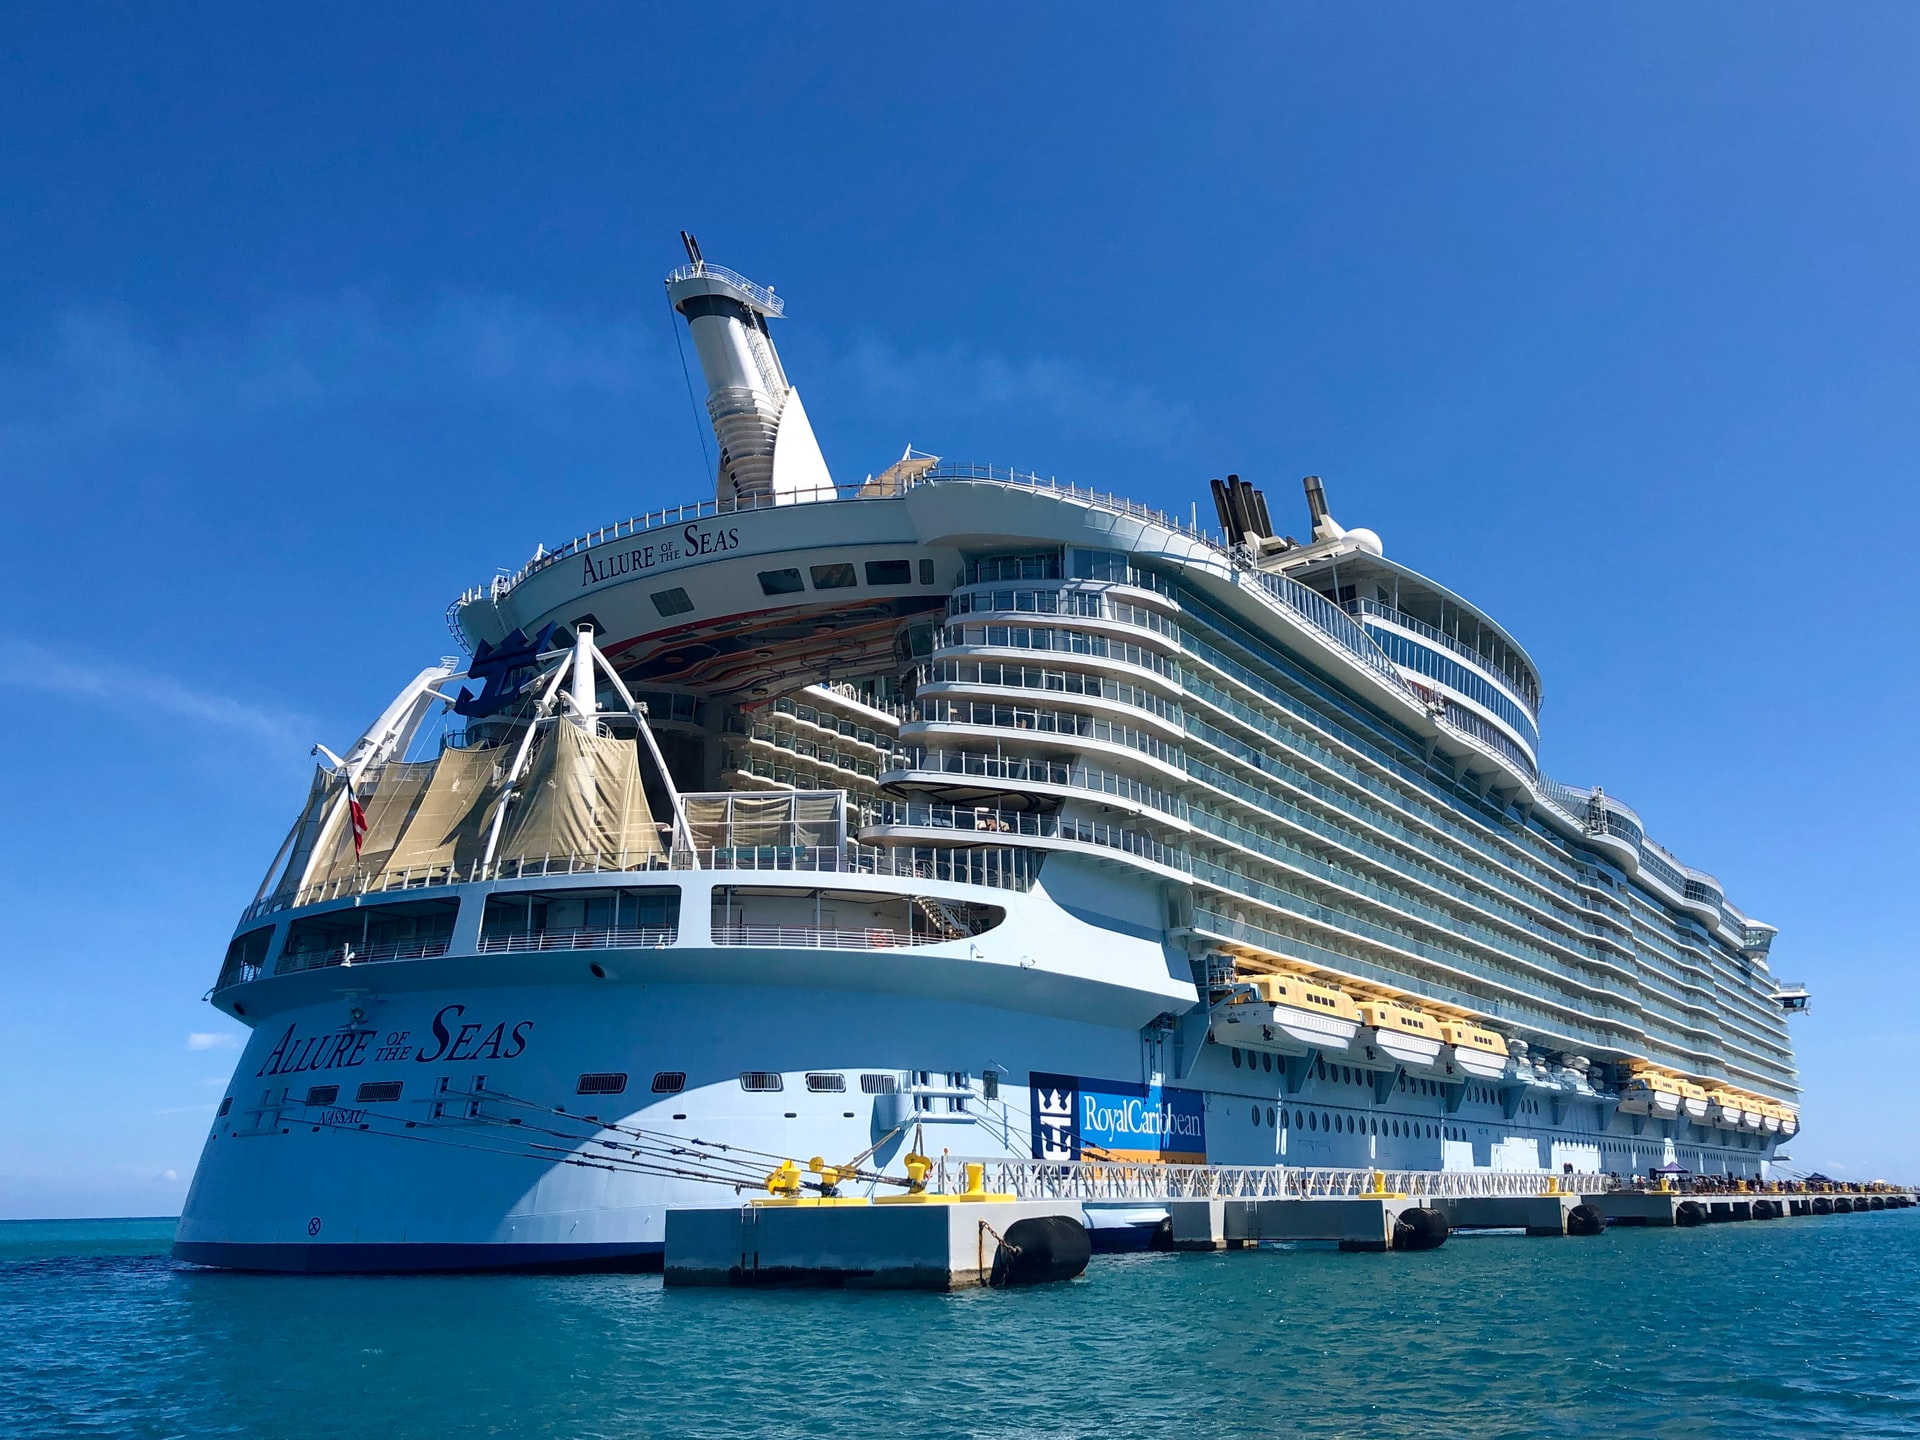 Cruise Lines See Bookings and Ticket Prices Rising, Setting the Course for a 2022 Recovery